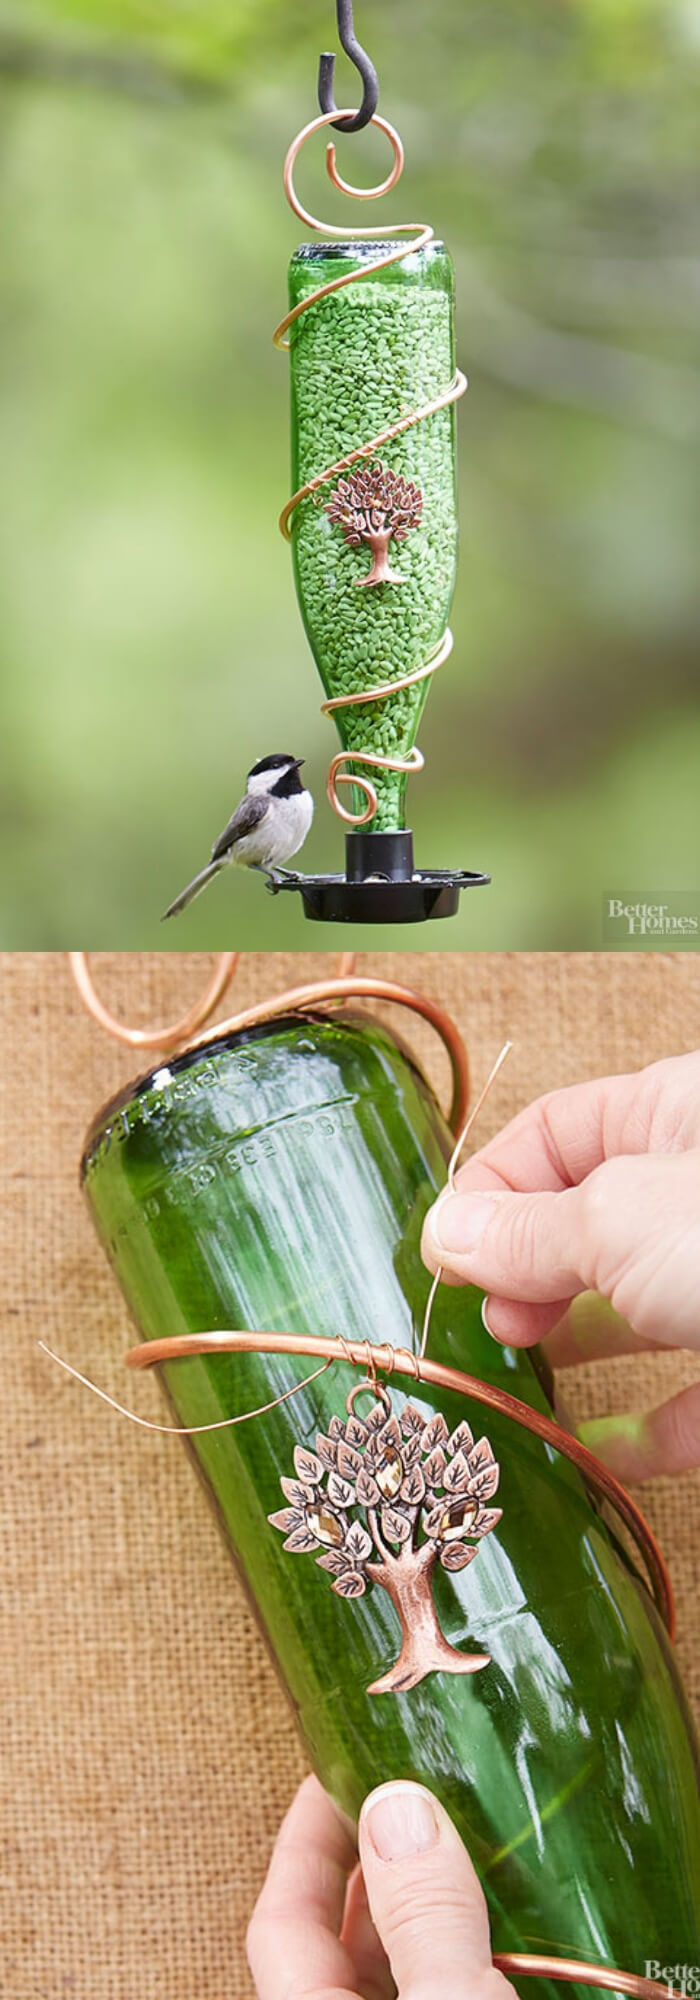 Recycled glass bottle